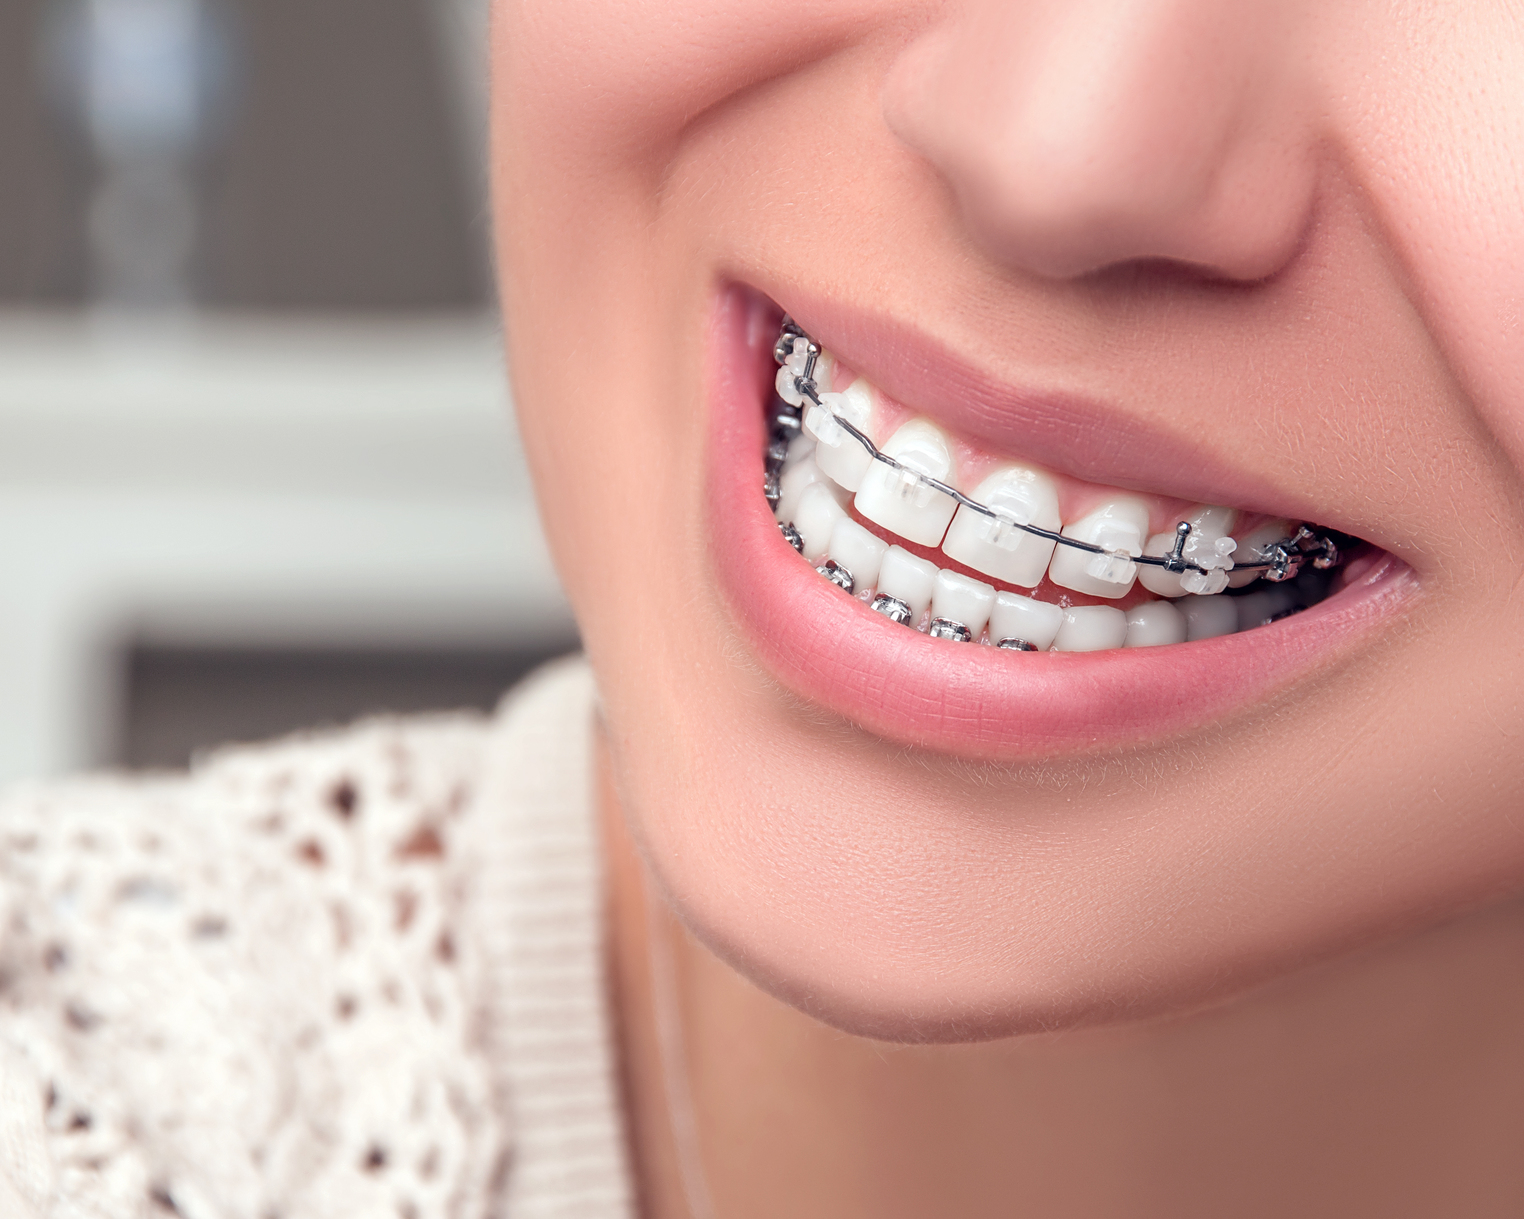 How Cosmetic Braces Can Give You the Beautifully Aligned Smile You've Always Wanted – In a Matter of Months